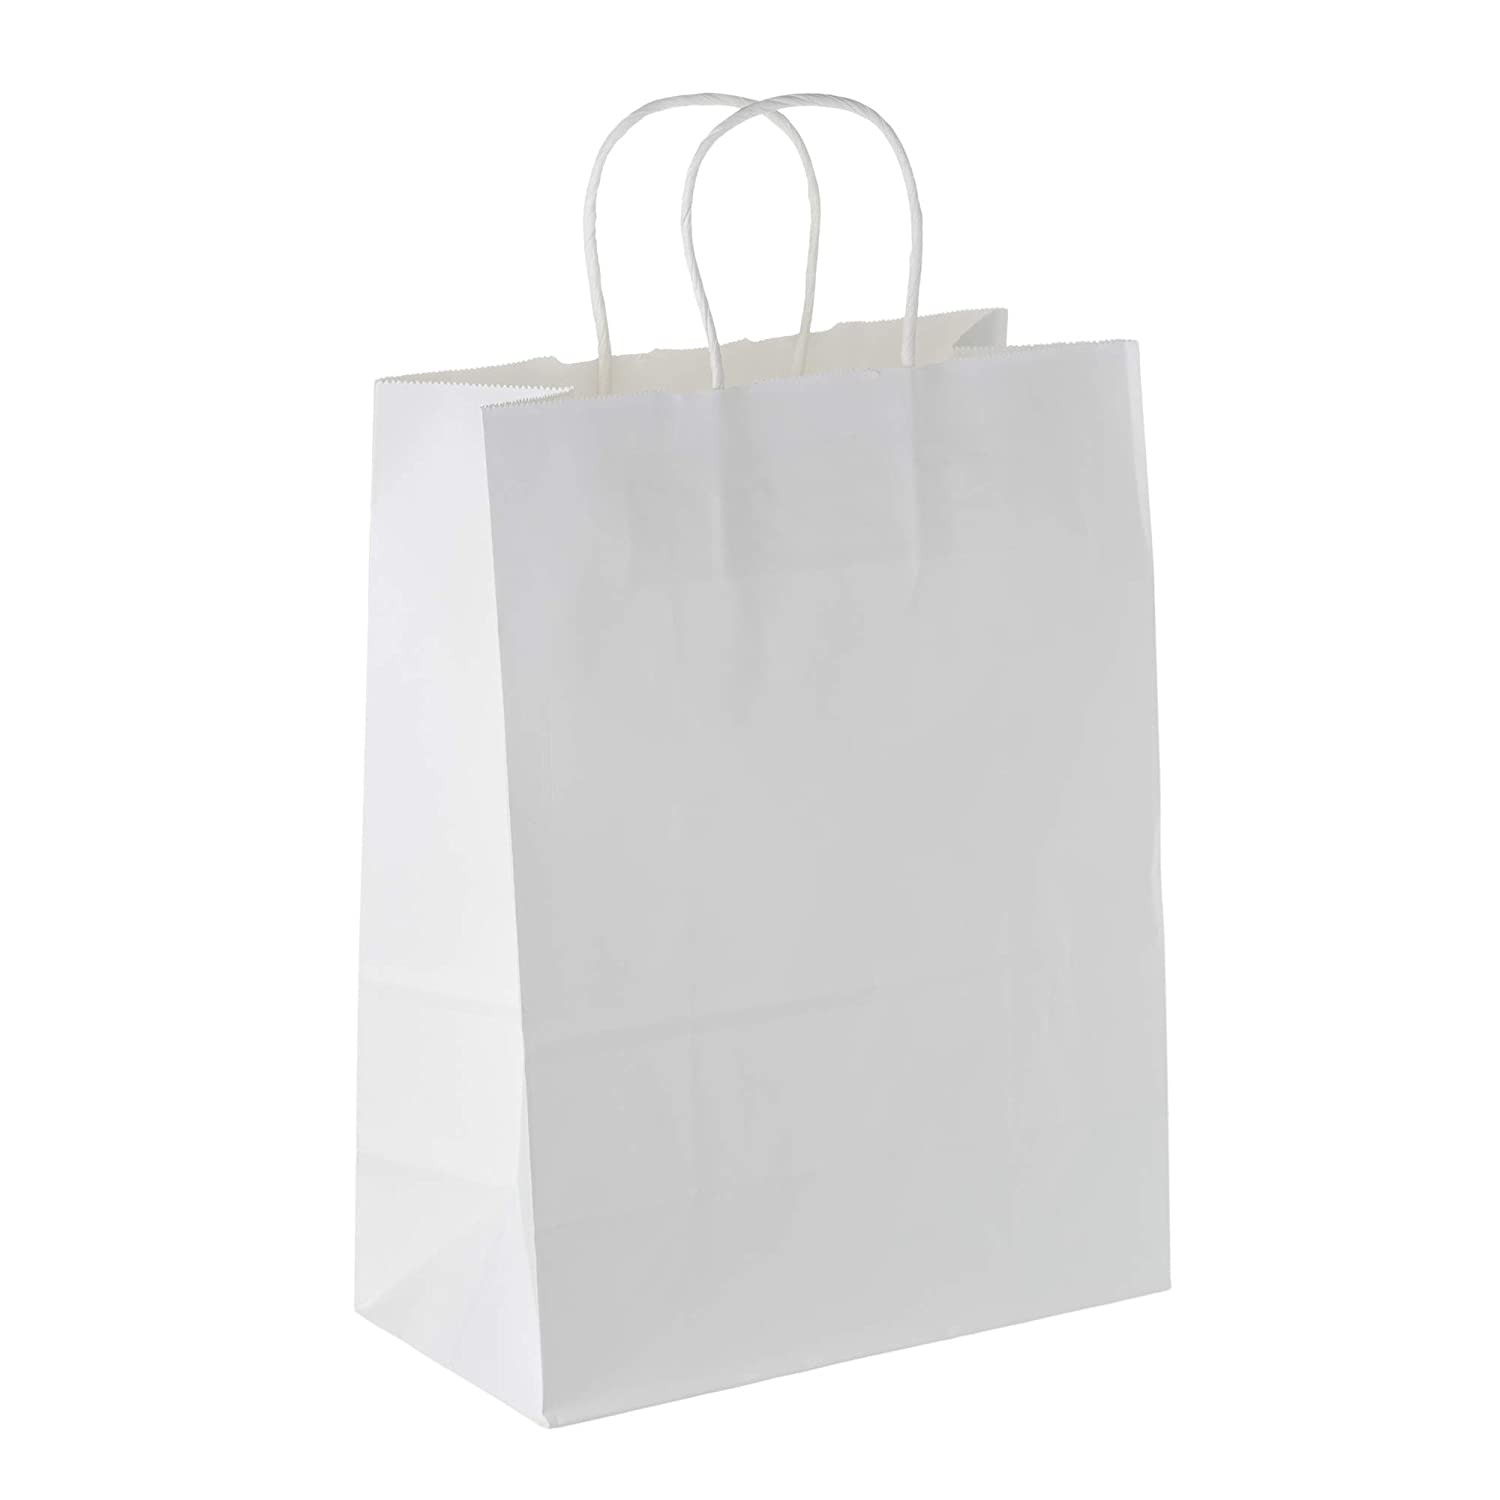 """White Paper Boutique Bags with Handles for Wedding, Party Favor, Thank You, and More, Kraft-Colored Economy Gift Bags Measuring 8.25"""" L x 4.75"""" W x 10.5"""" H (25 Count) - Creative Bag Creative Bag Company 2AE0896"""